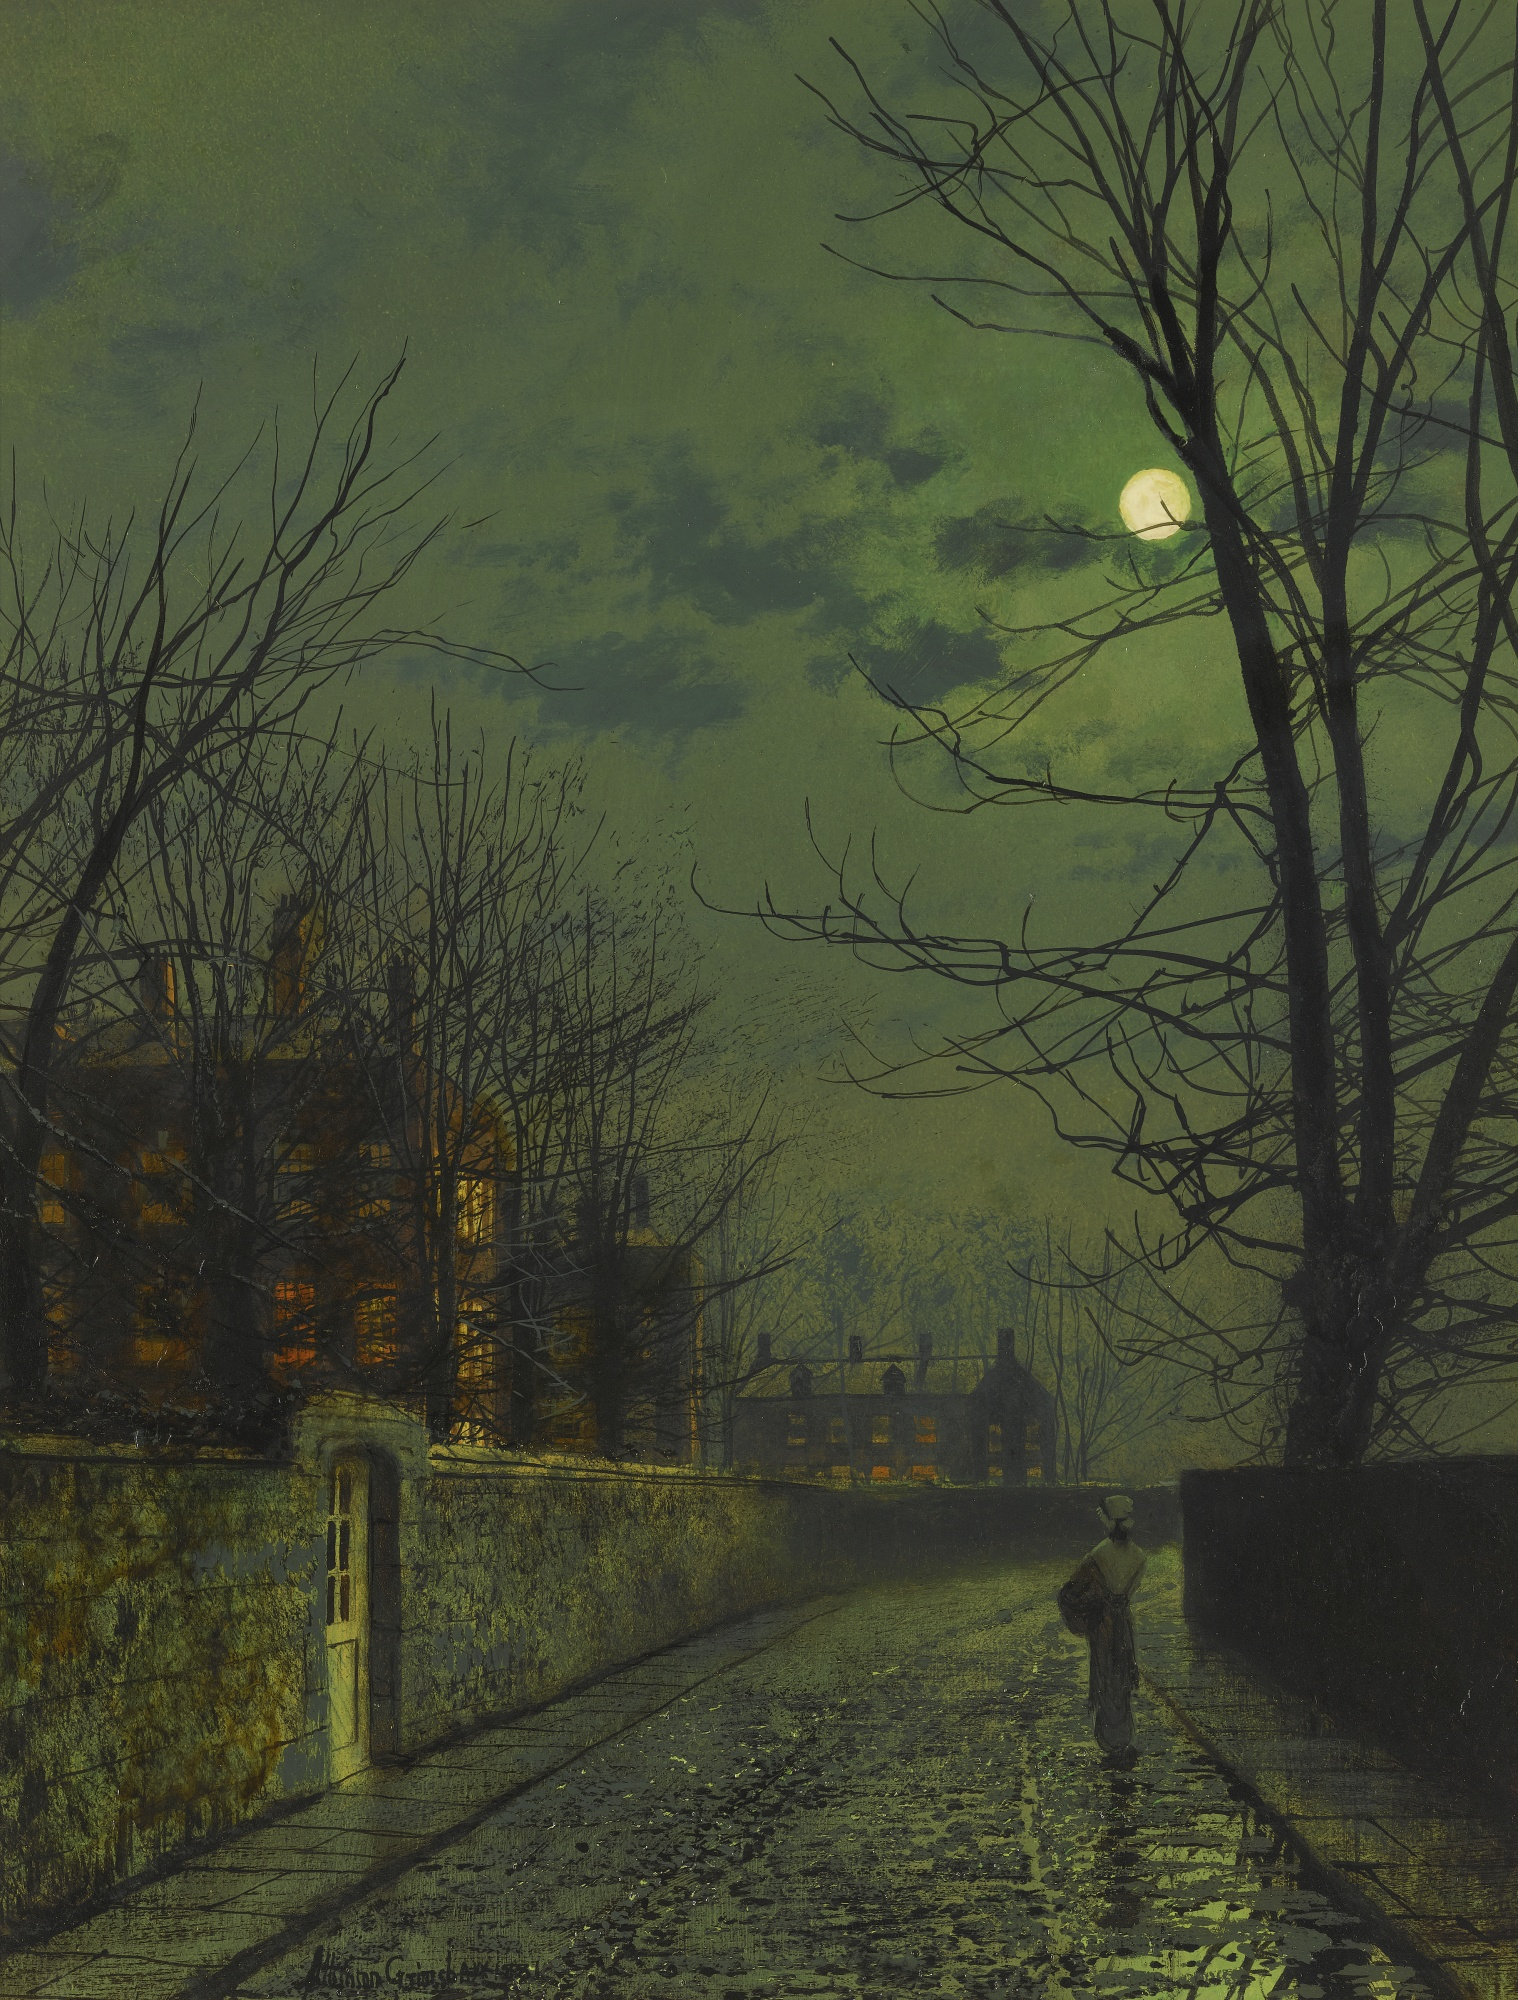 A Moonlit Street after Rain, by John Atkinson Grimshaw, 1881